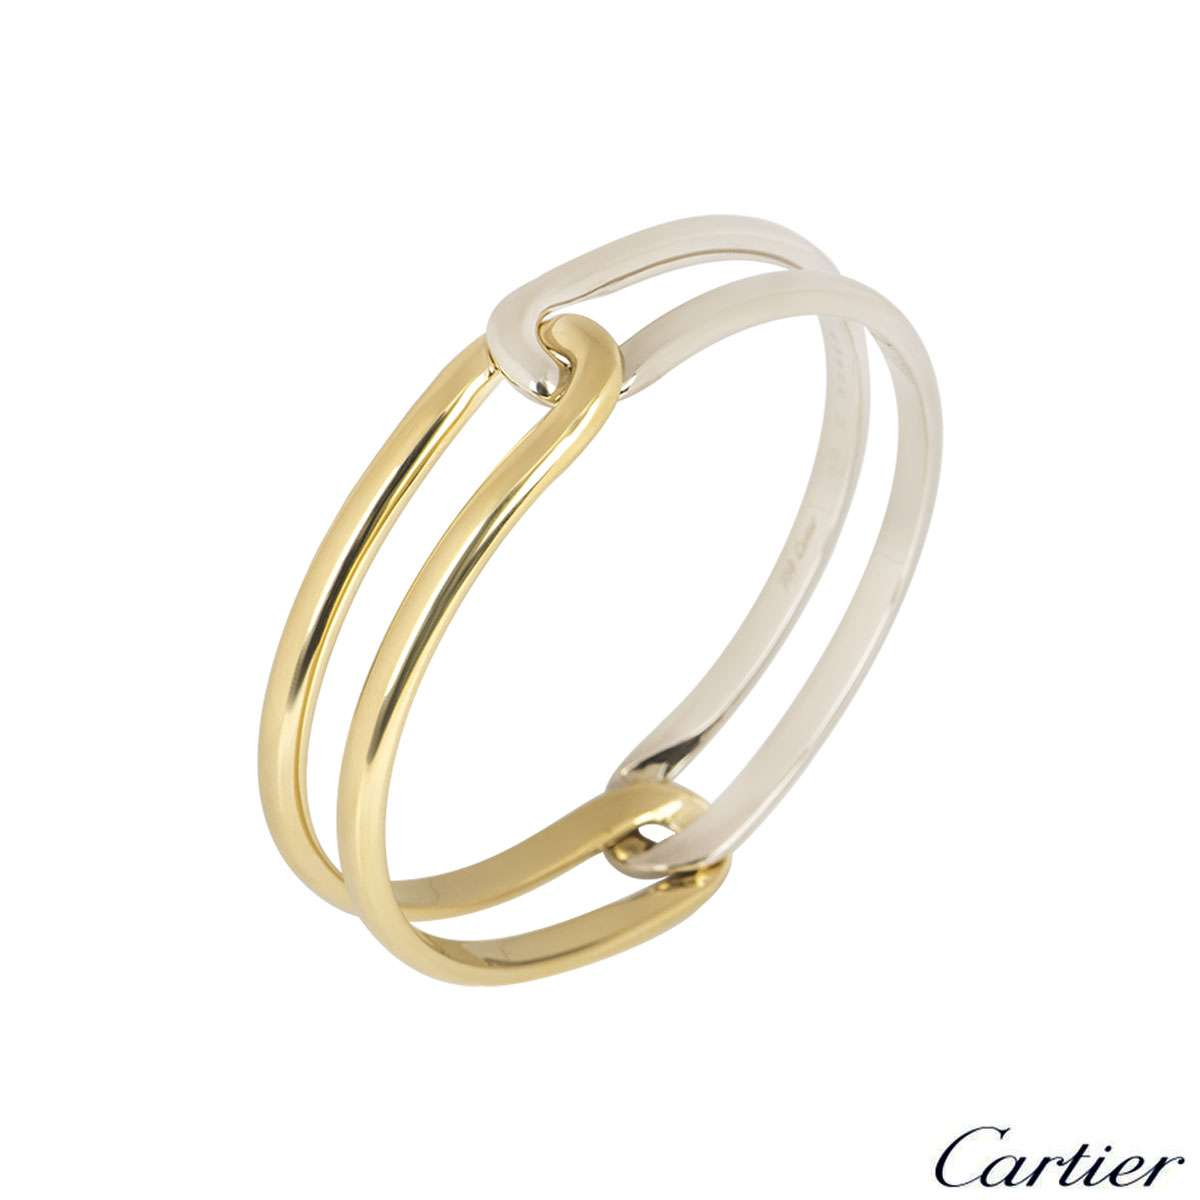 cross yellow image rub jewellery bangle over white diamond gold bangles bracelets